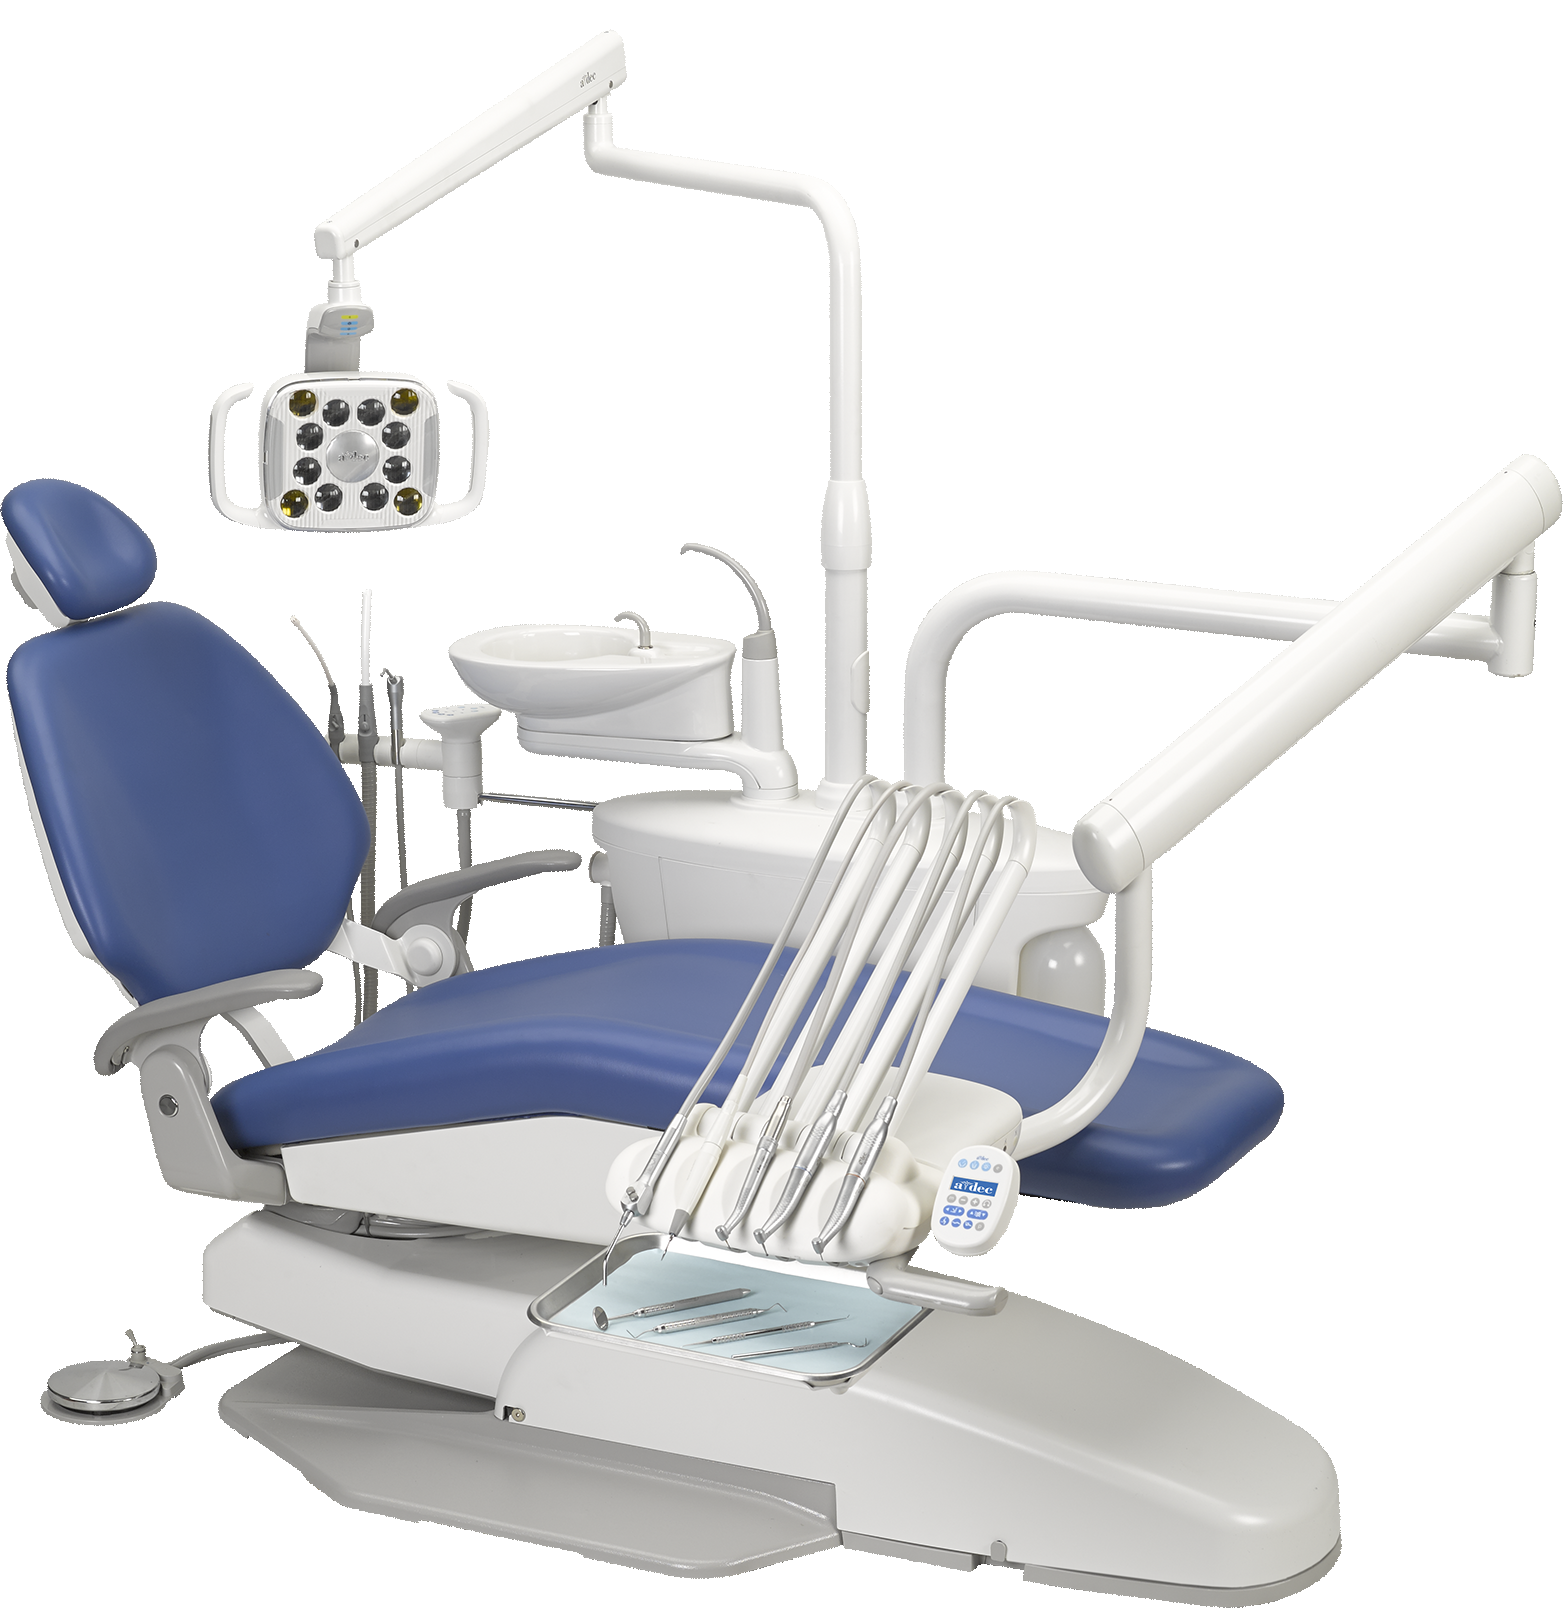 Image of a Dental Chair - Dental Equipment